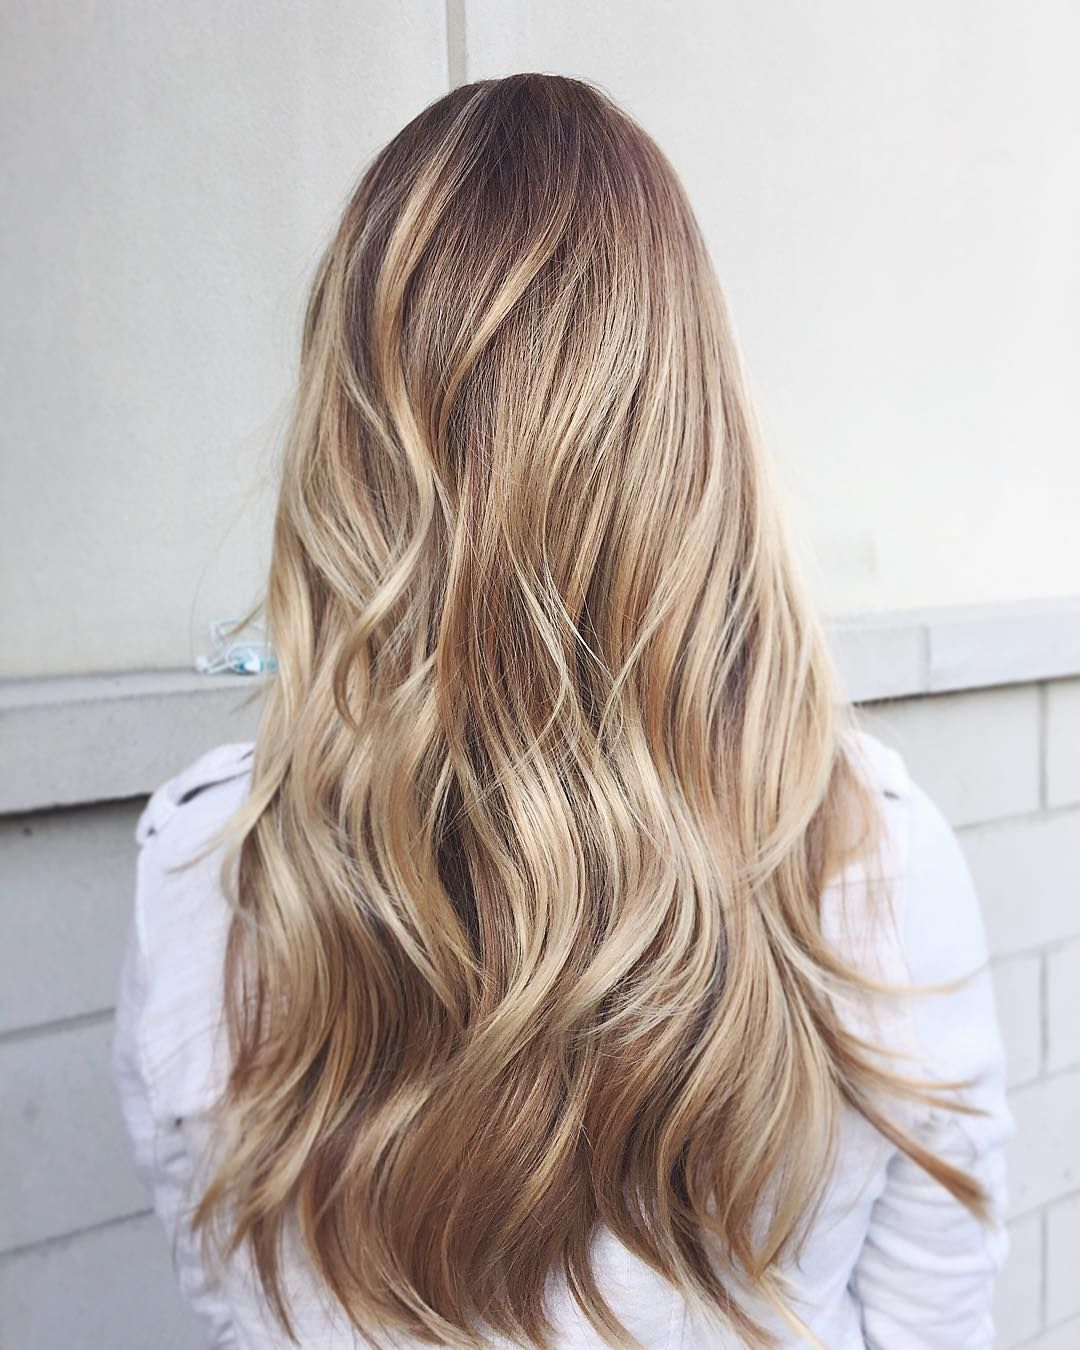 Teacherus pet vibes we suggest pairing a texturized blonde shade